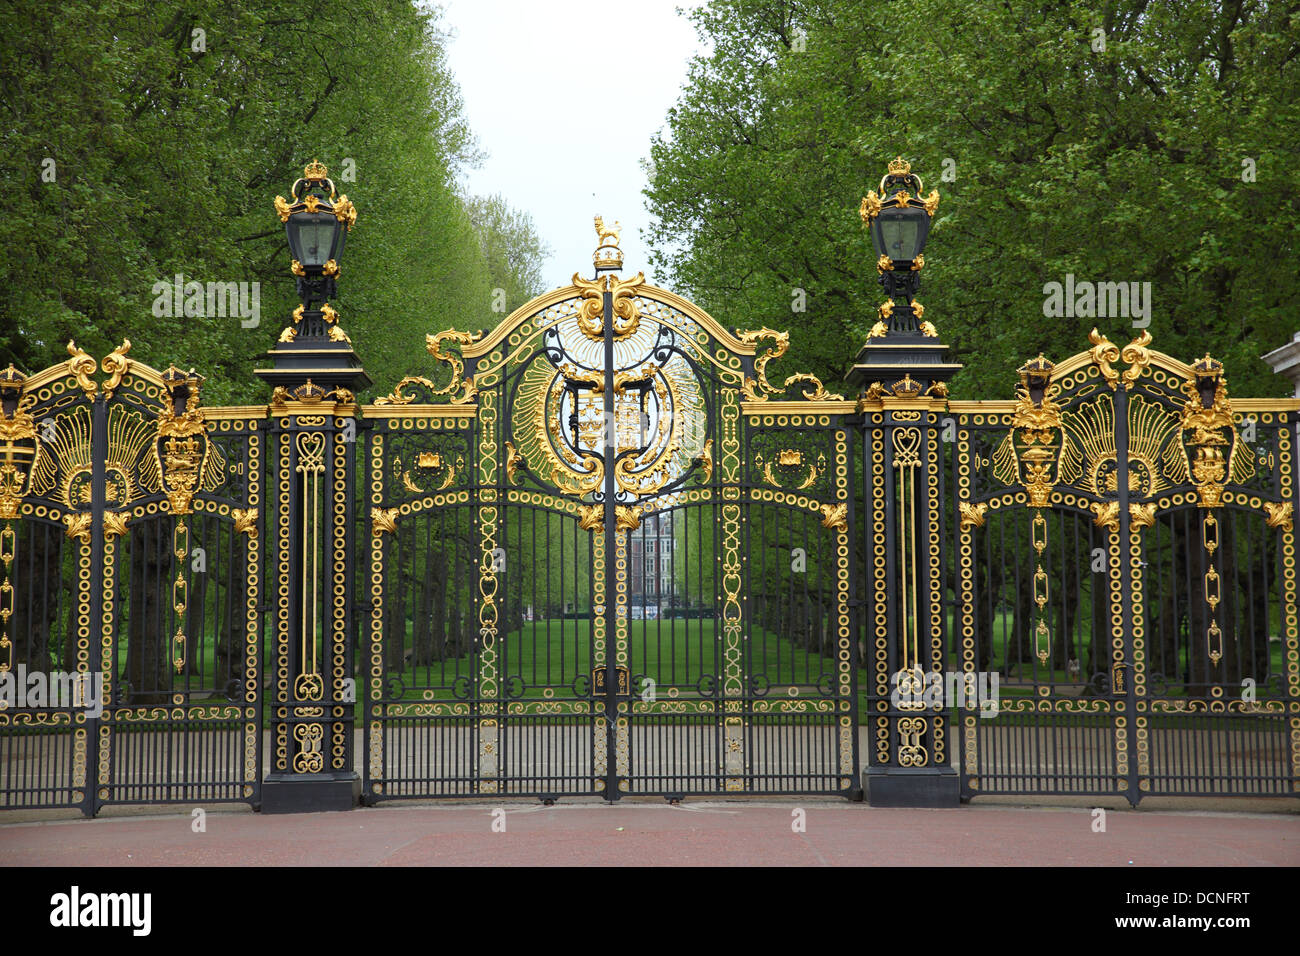 The Gates to Buckingham Palace, Westminster, London, England, UK - Stock Image